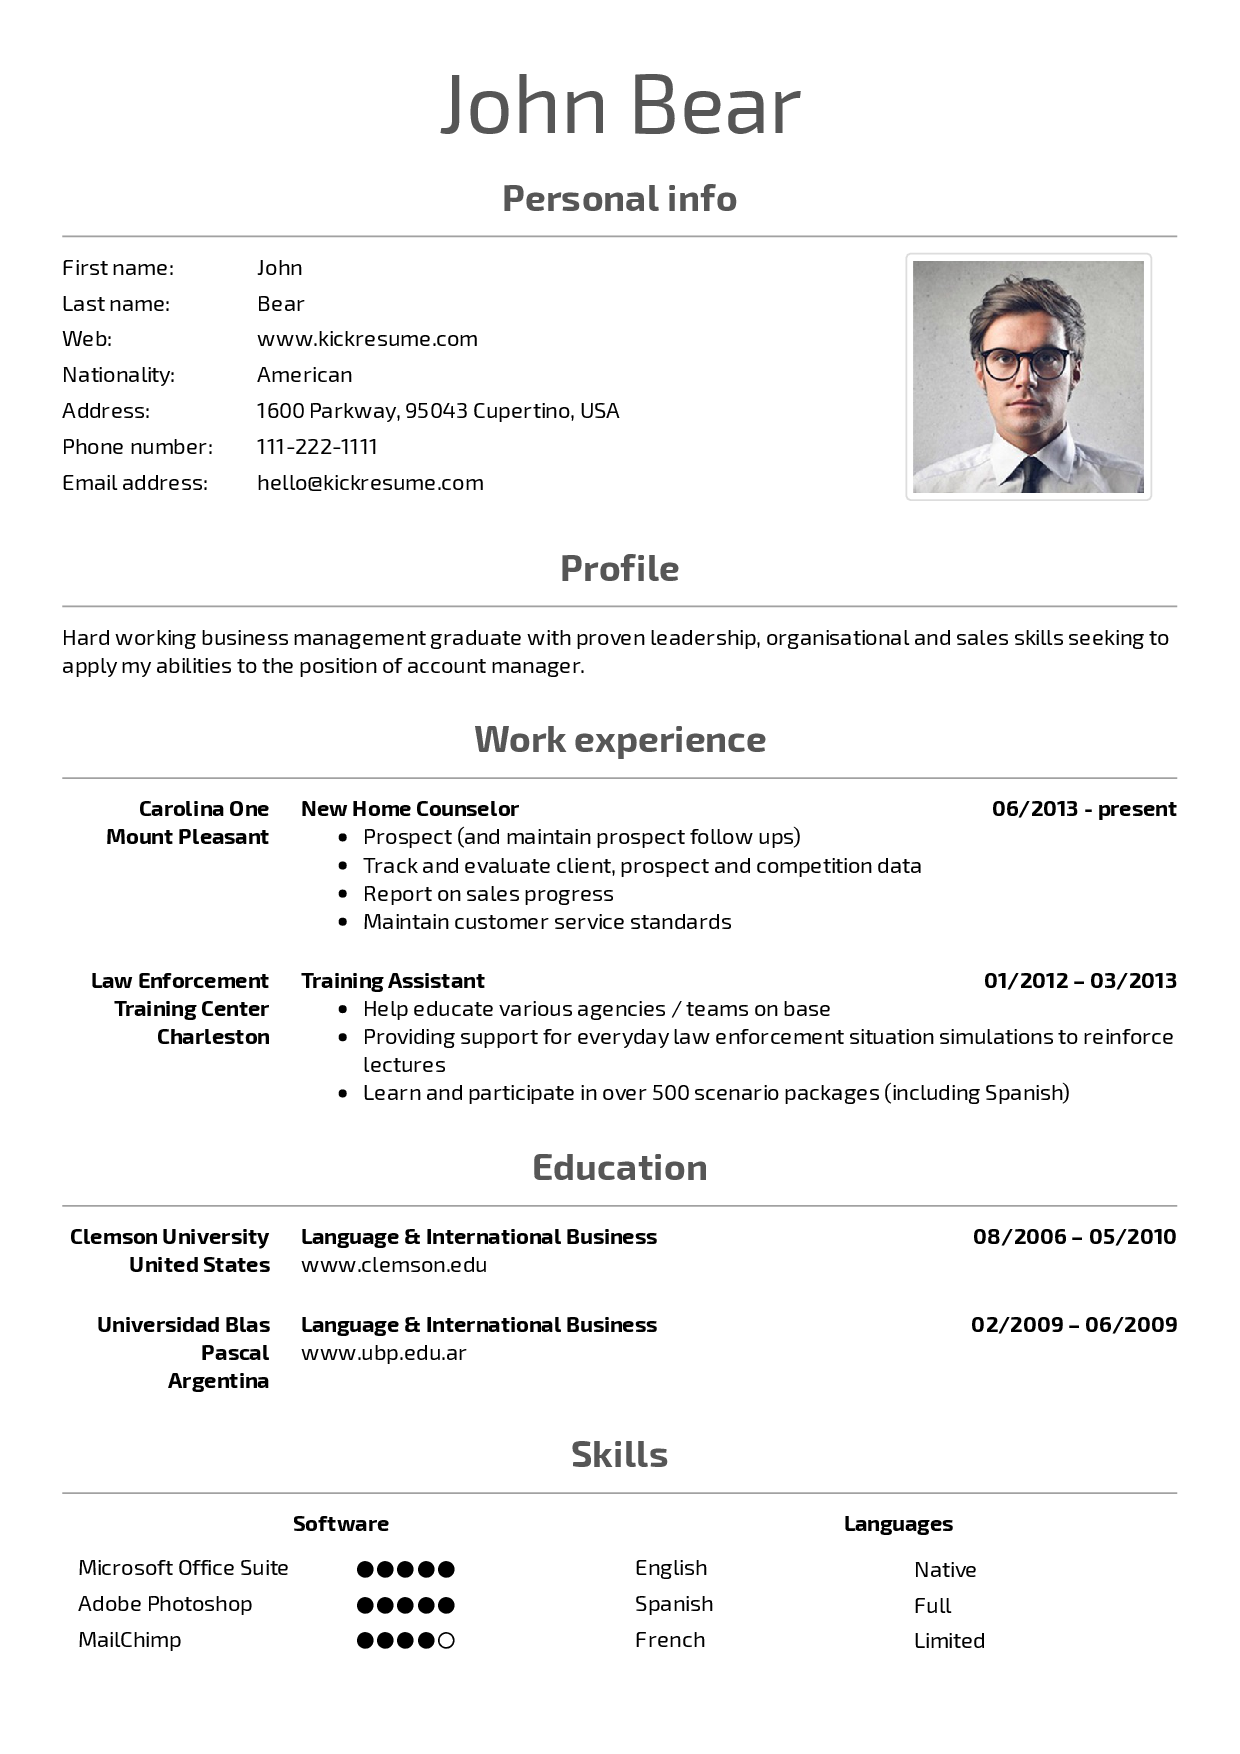 Pin by Hannah Wolfe on Resume + etc (With images) Resume